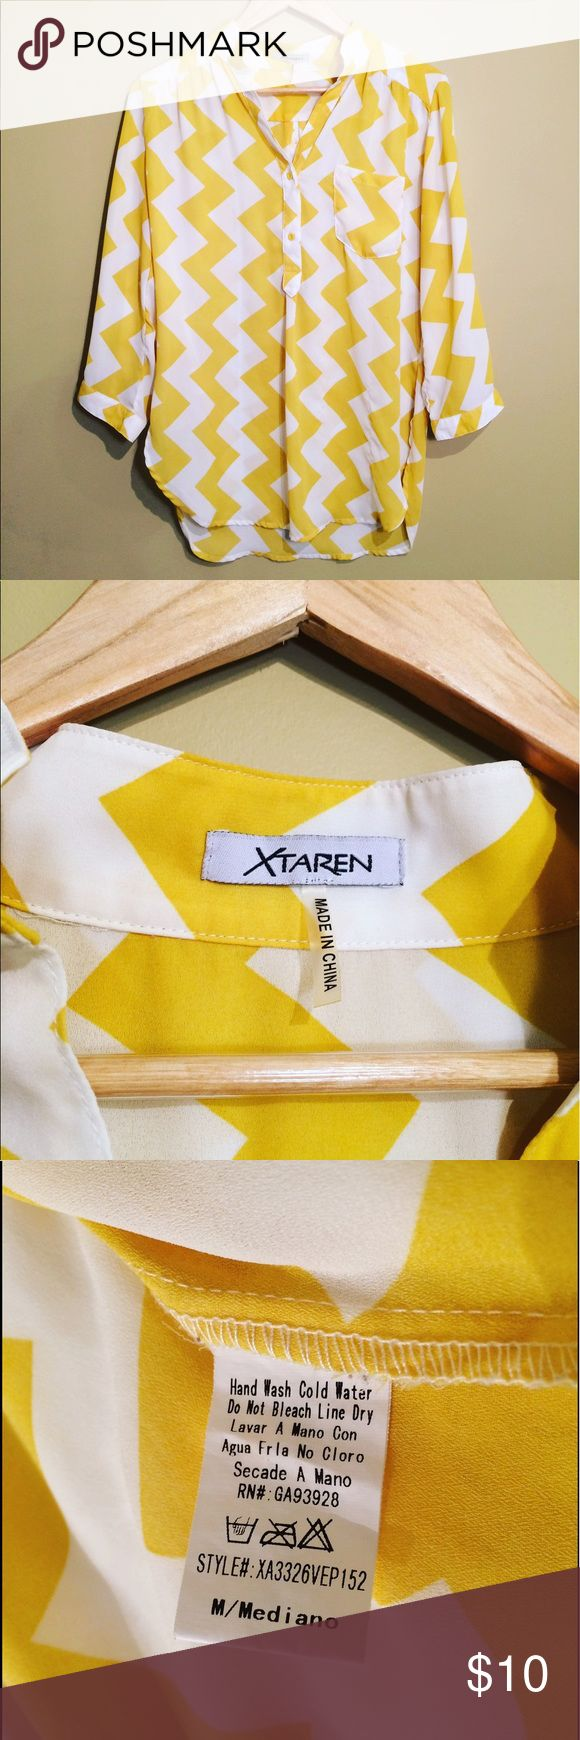 Xtaren White and Yellow Chevron Blouse White and mustard color chevron pattern Blouse. Very light Sheer material. No stains, very well taken care of. Size medium but can also fit small and large. Perfect for spring and summer. xtaren  Tops Blouses